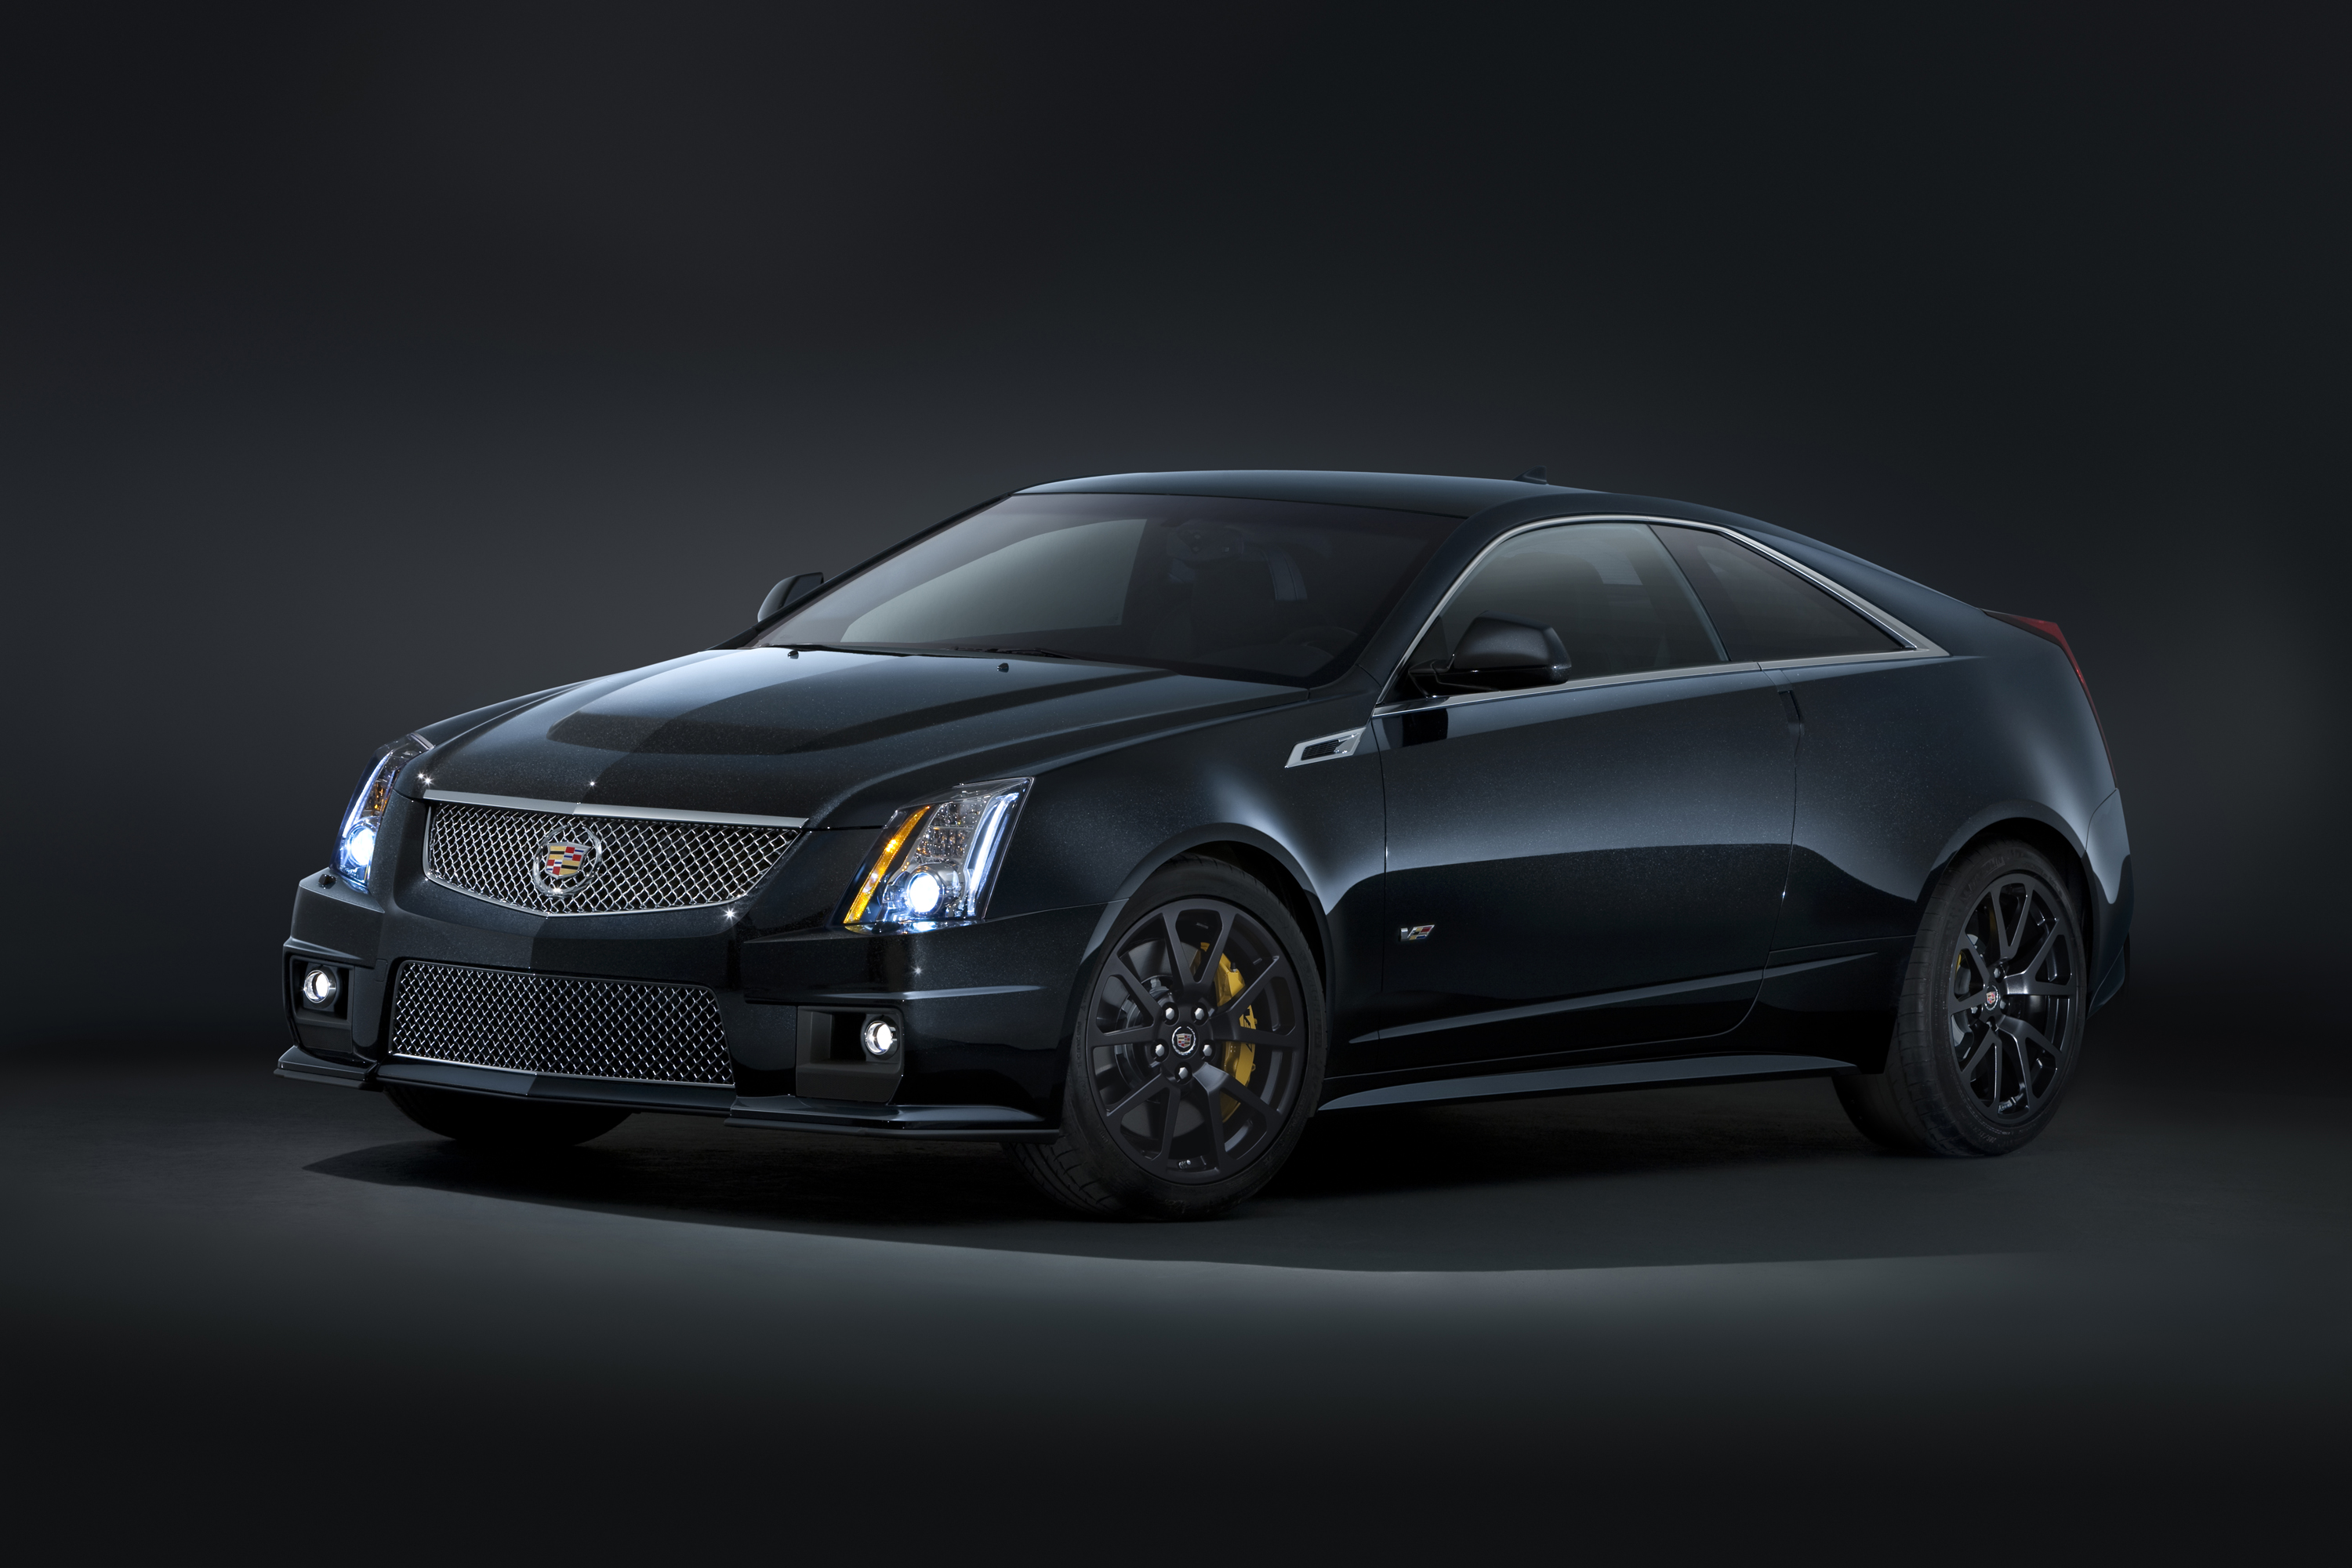 Cars cadillac cts coupe 2012 #9